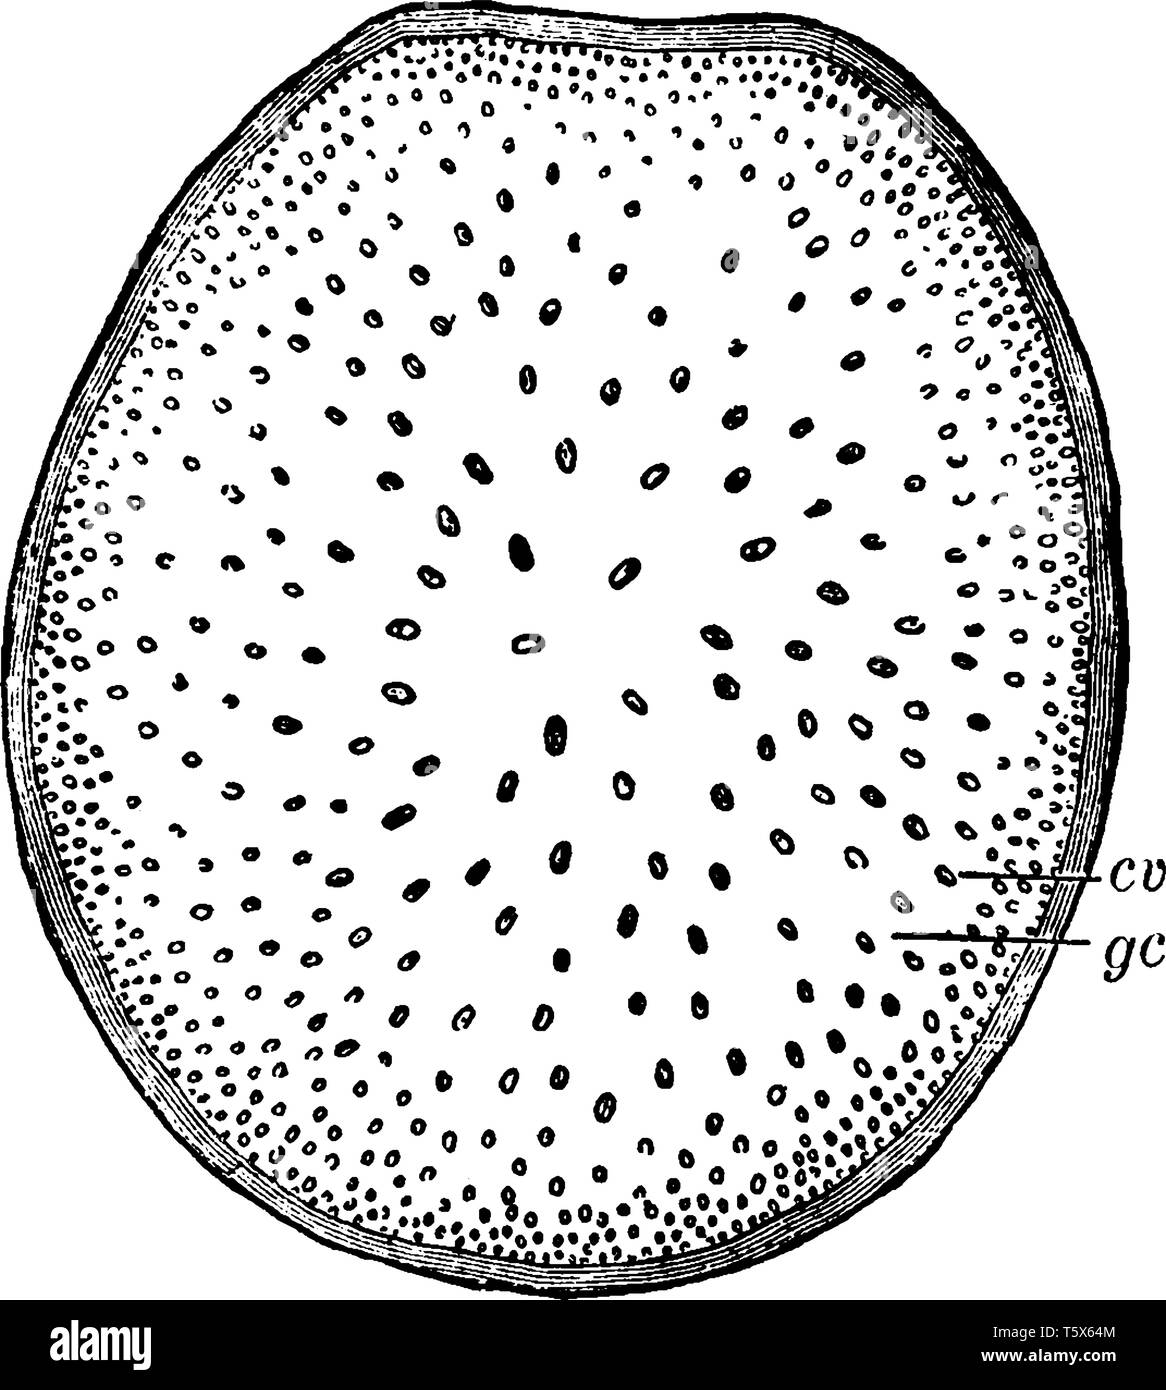 This is image cross-section of stem of Indian corn where cv, fibro-vascular bundles; gc, pithy material between bundles, vintage line drawing or engra - Stock Image